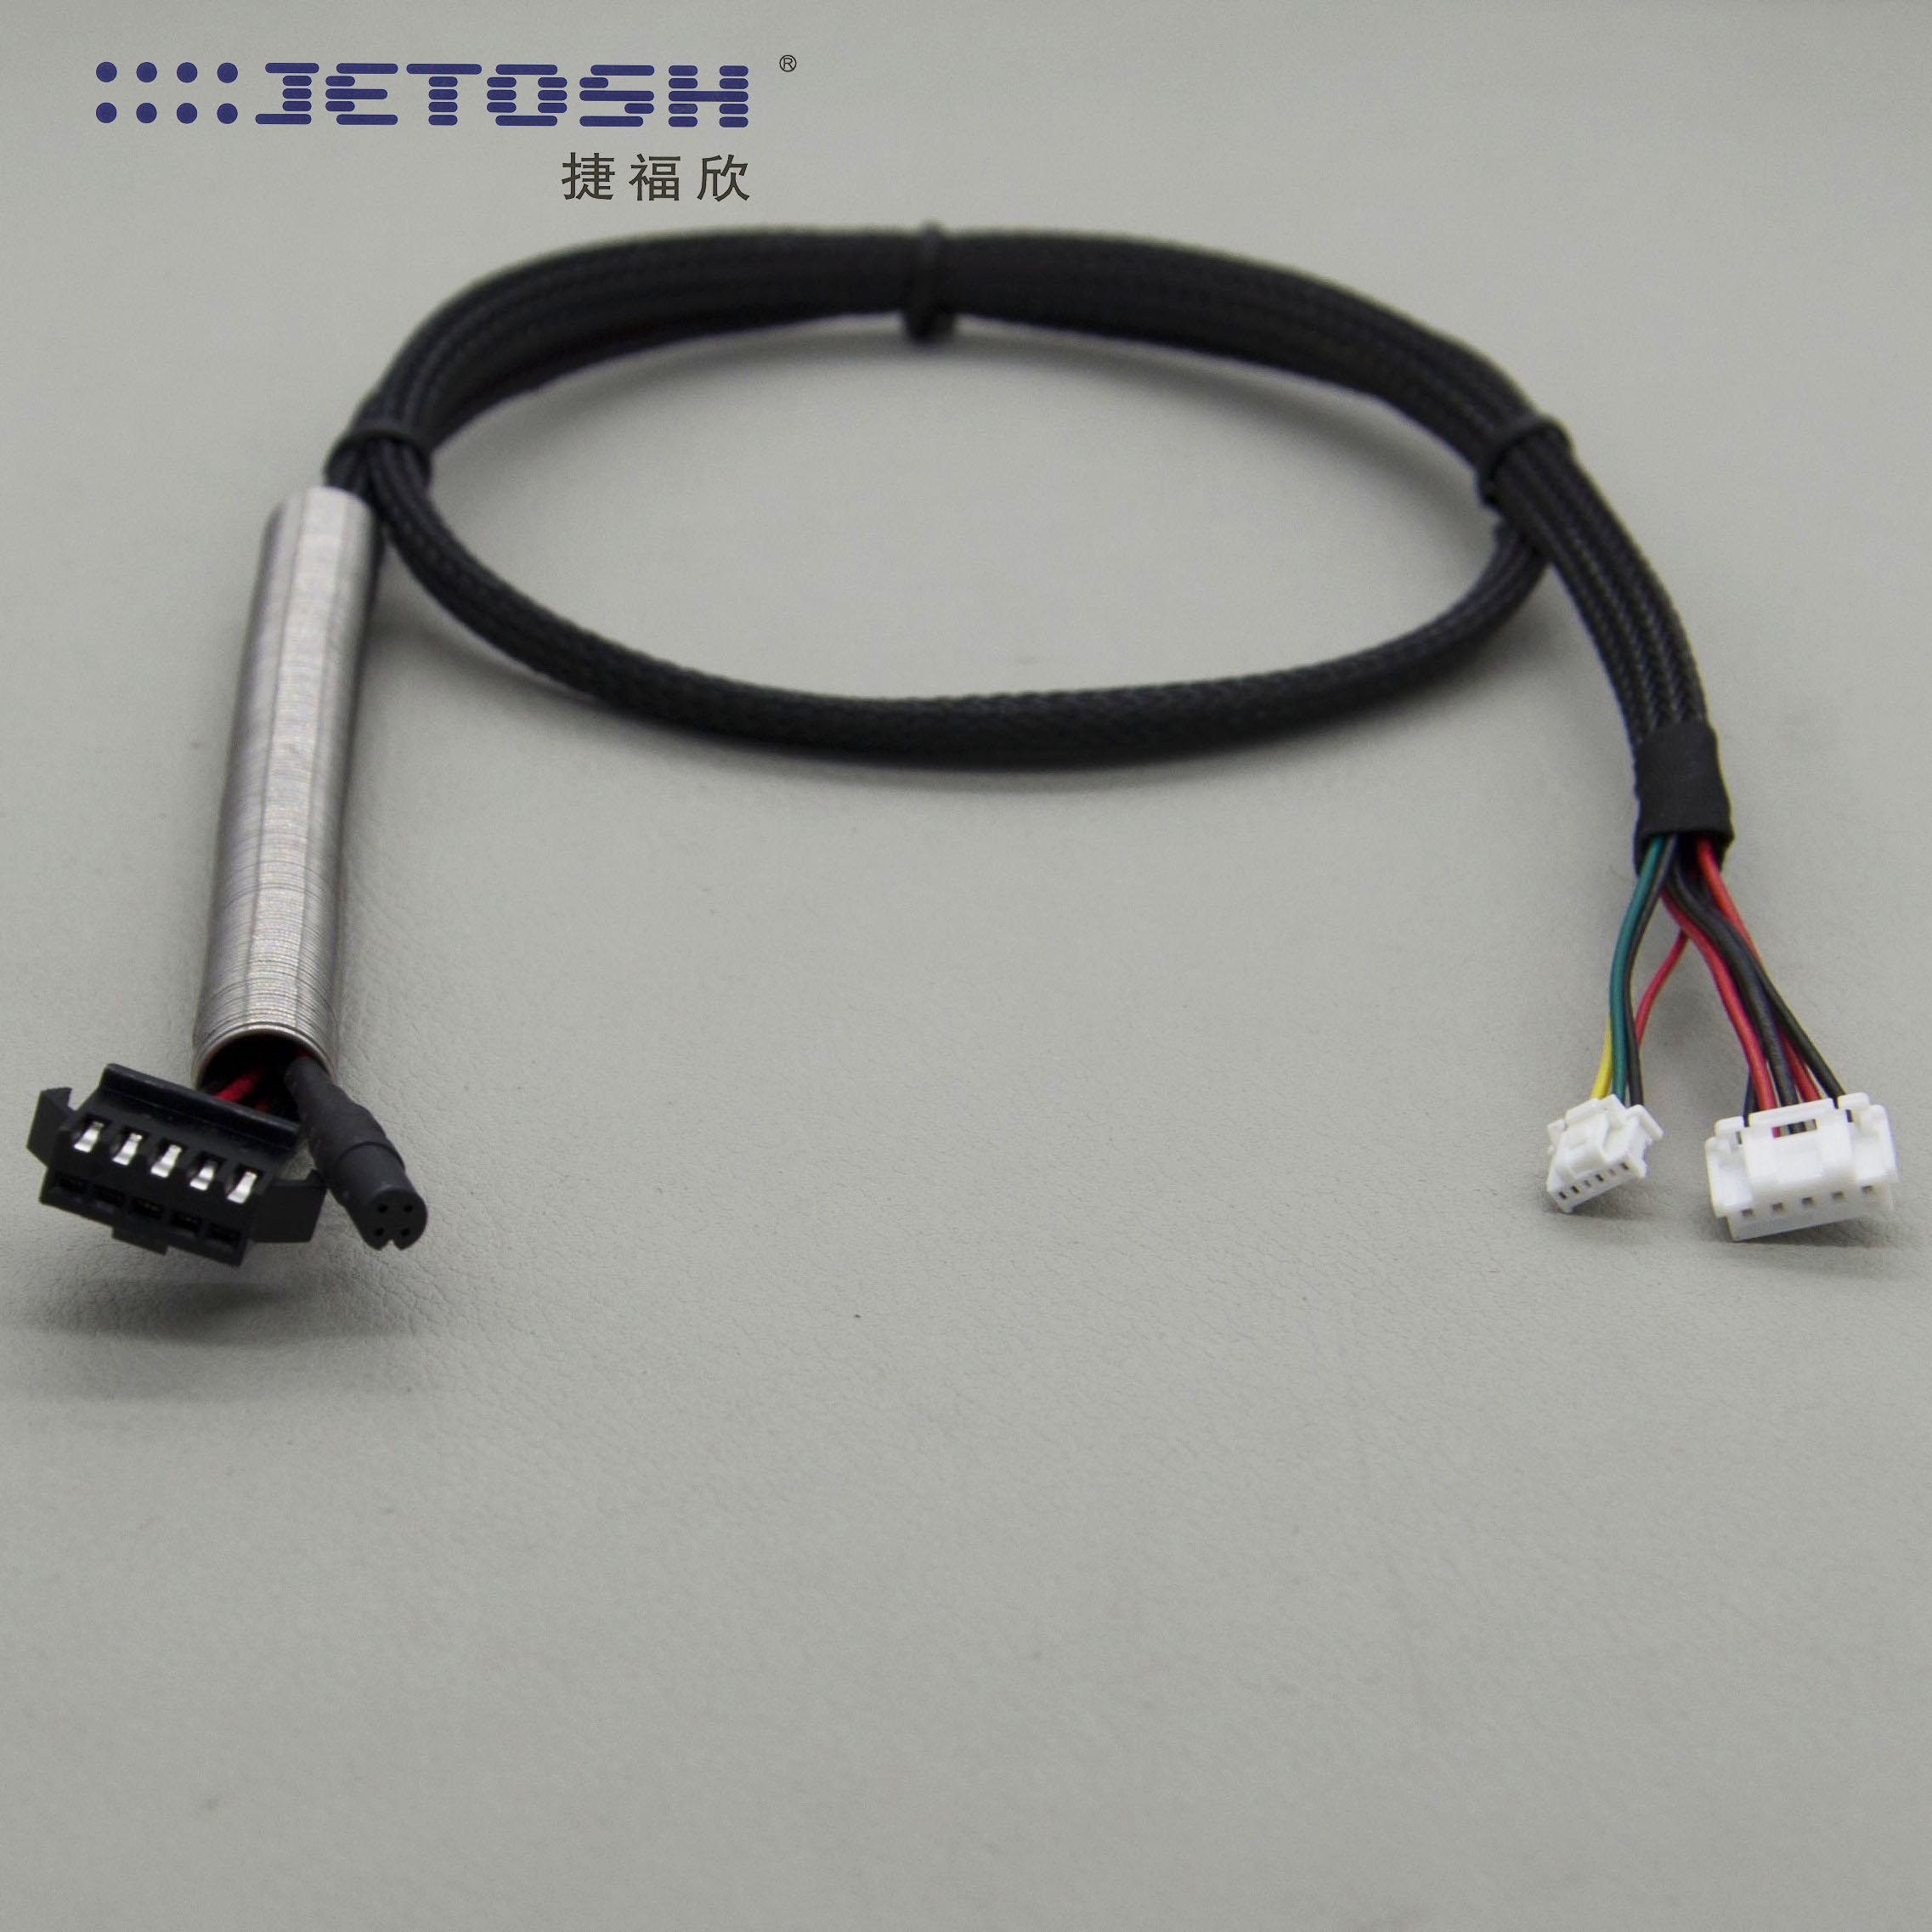 Wiring harness for electric vehicle